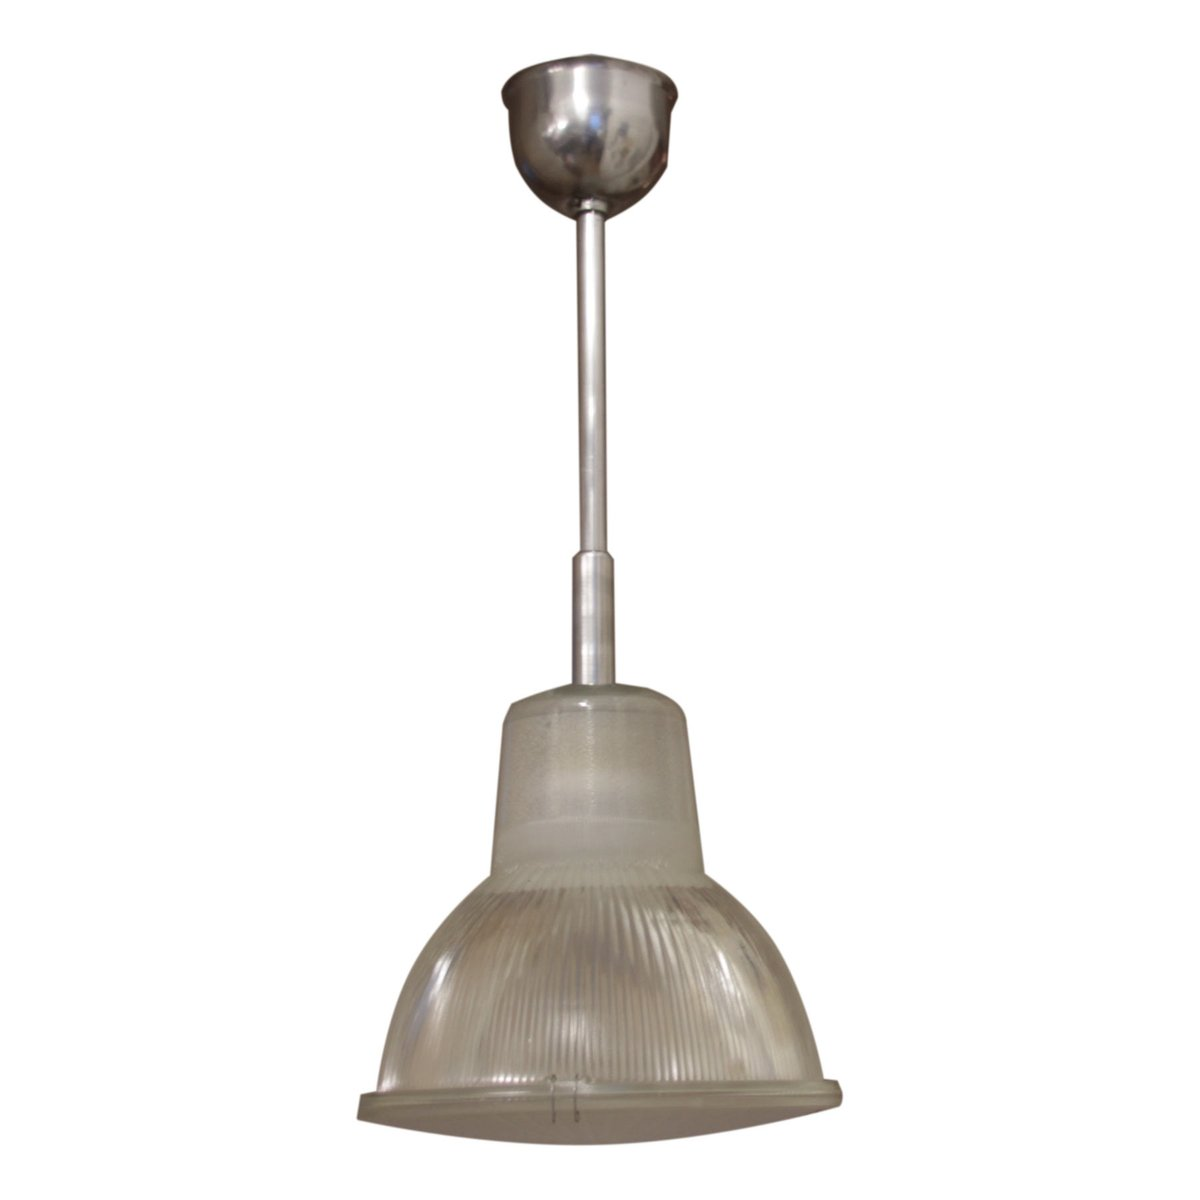 Vintage Industrial French Pendant Light from Holophane  sc 1 st  Pamono & Vintage Industrial French Pendant Light from Holophane for sale at ... azcodes.com